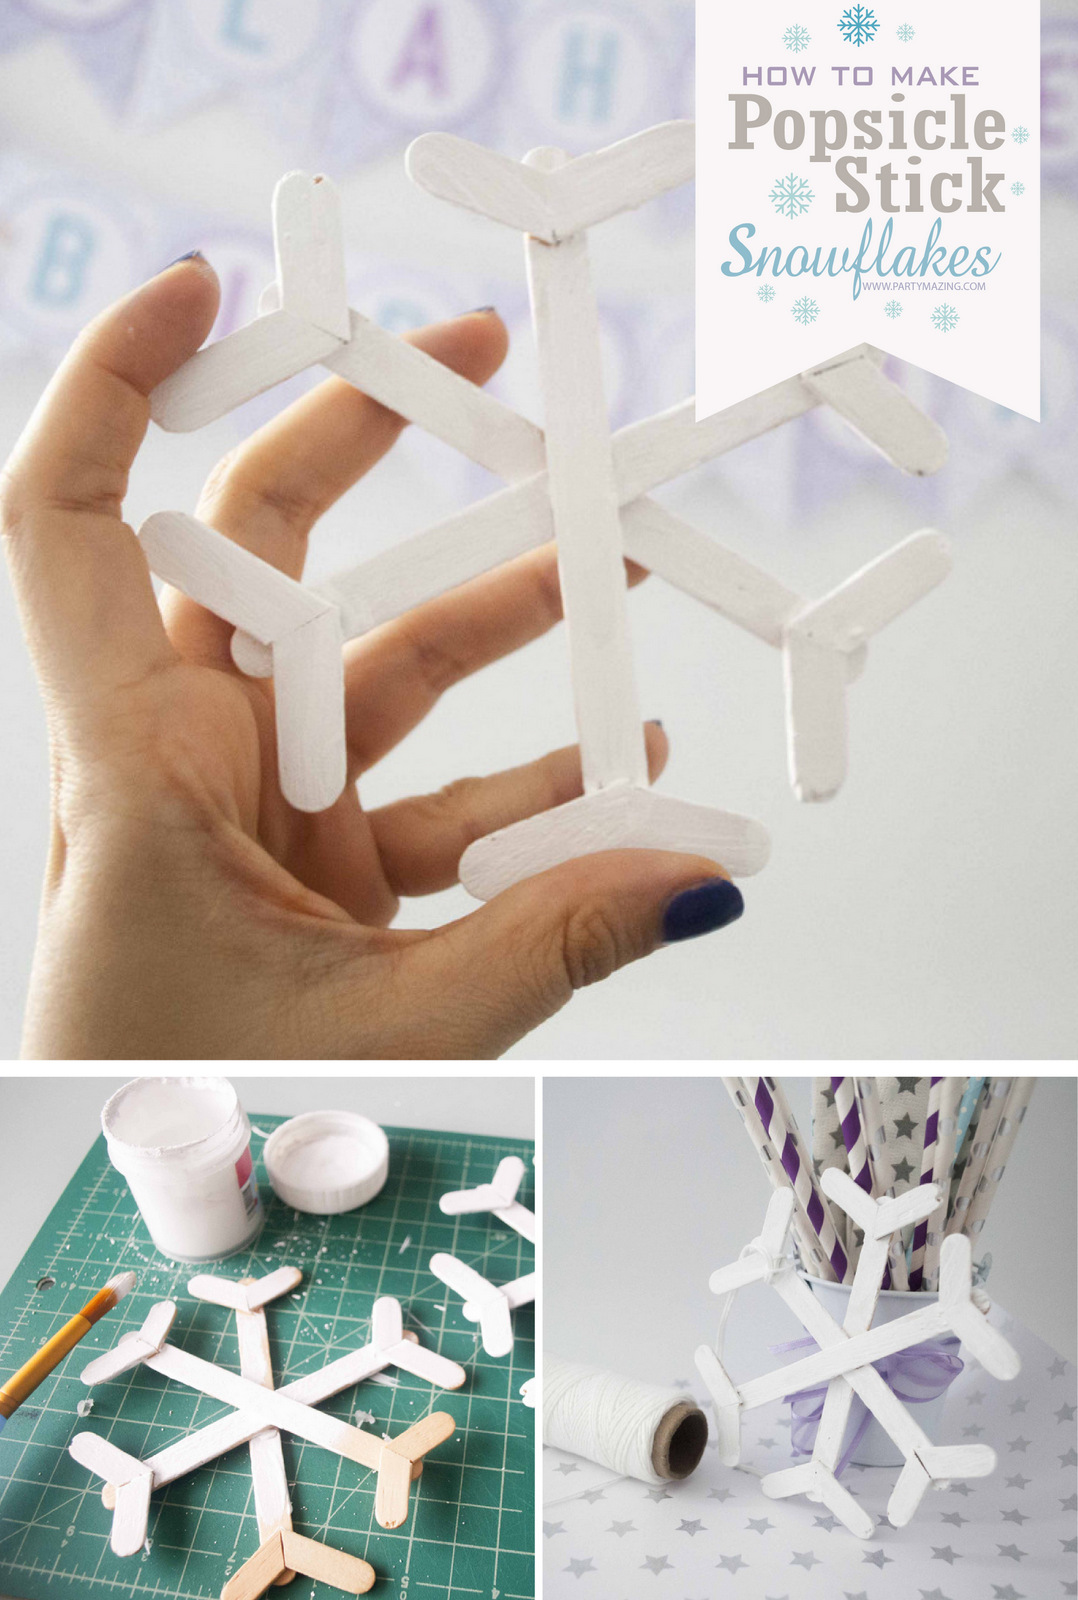 How to make Popsicle Stick Snowflakes Promotional Picture